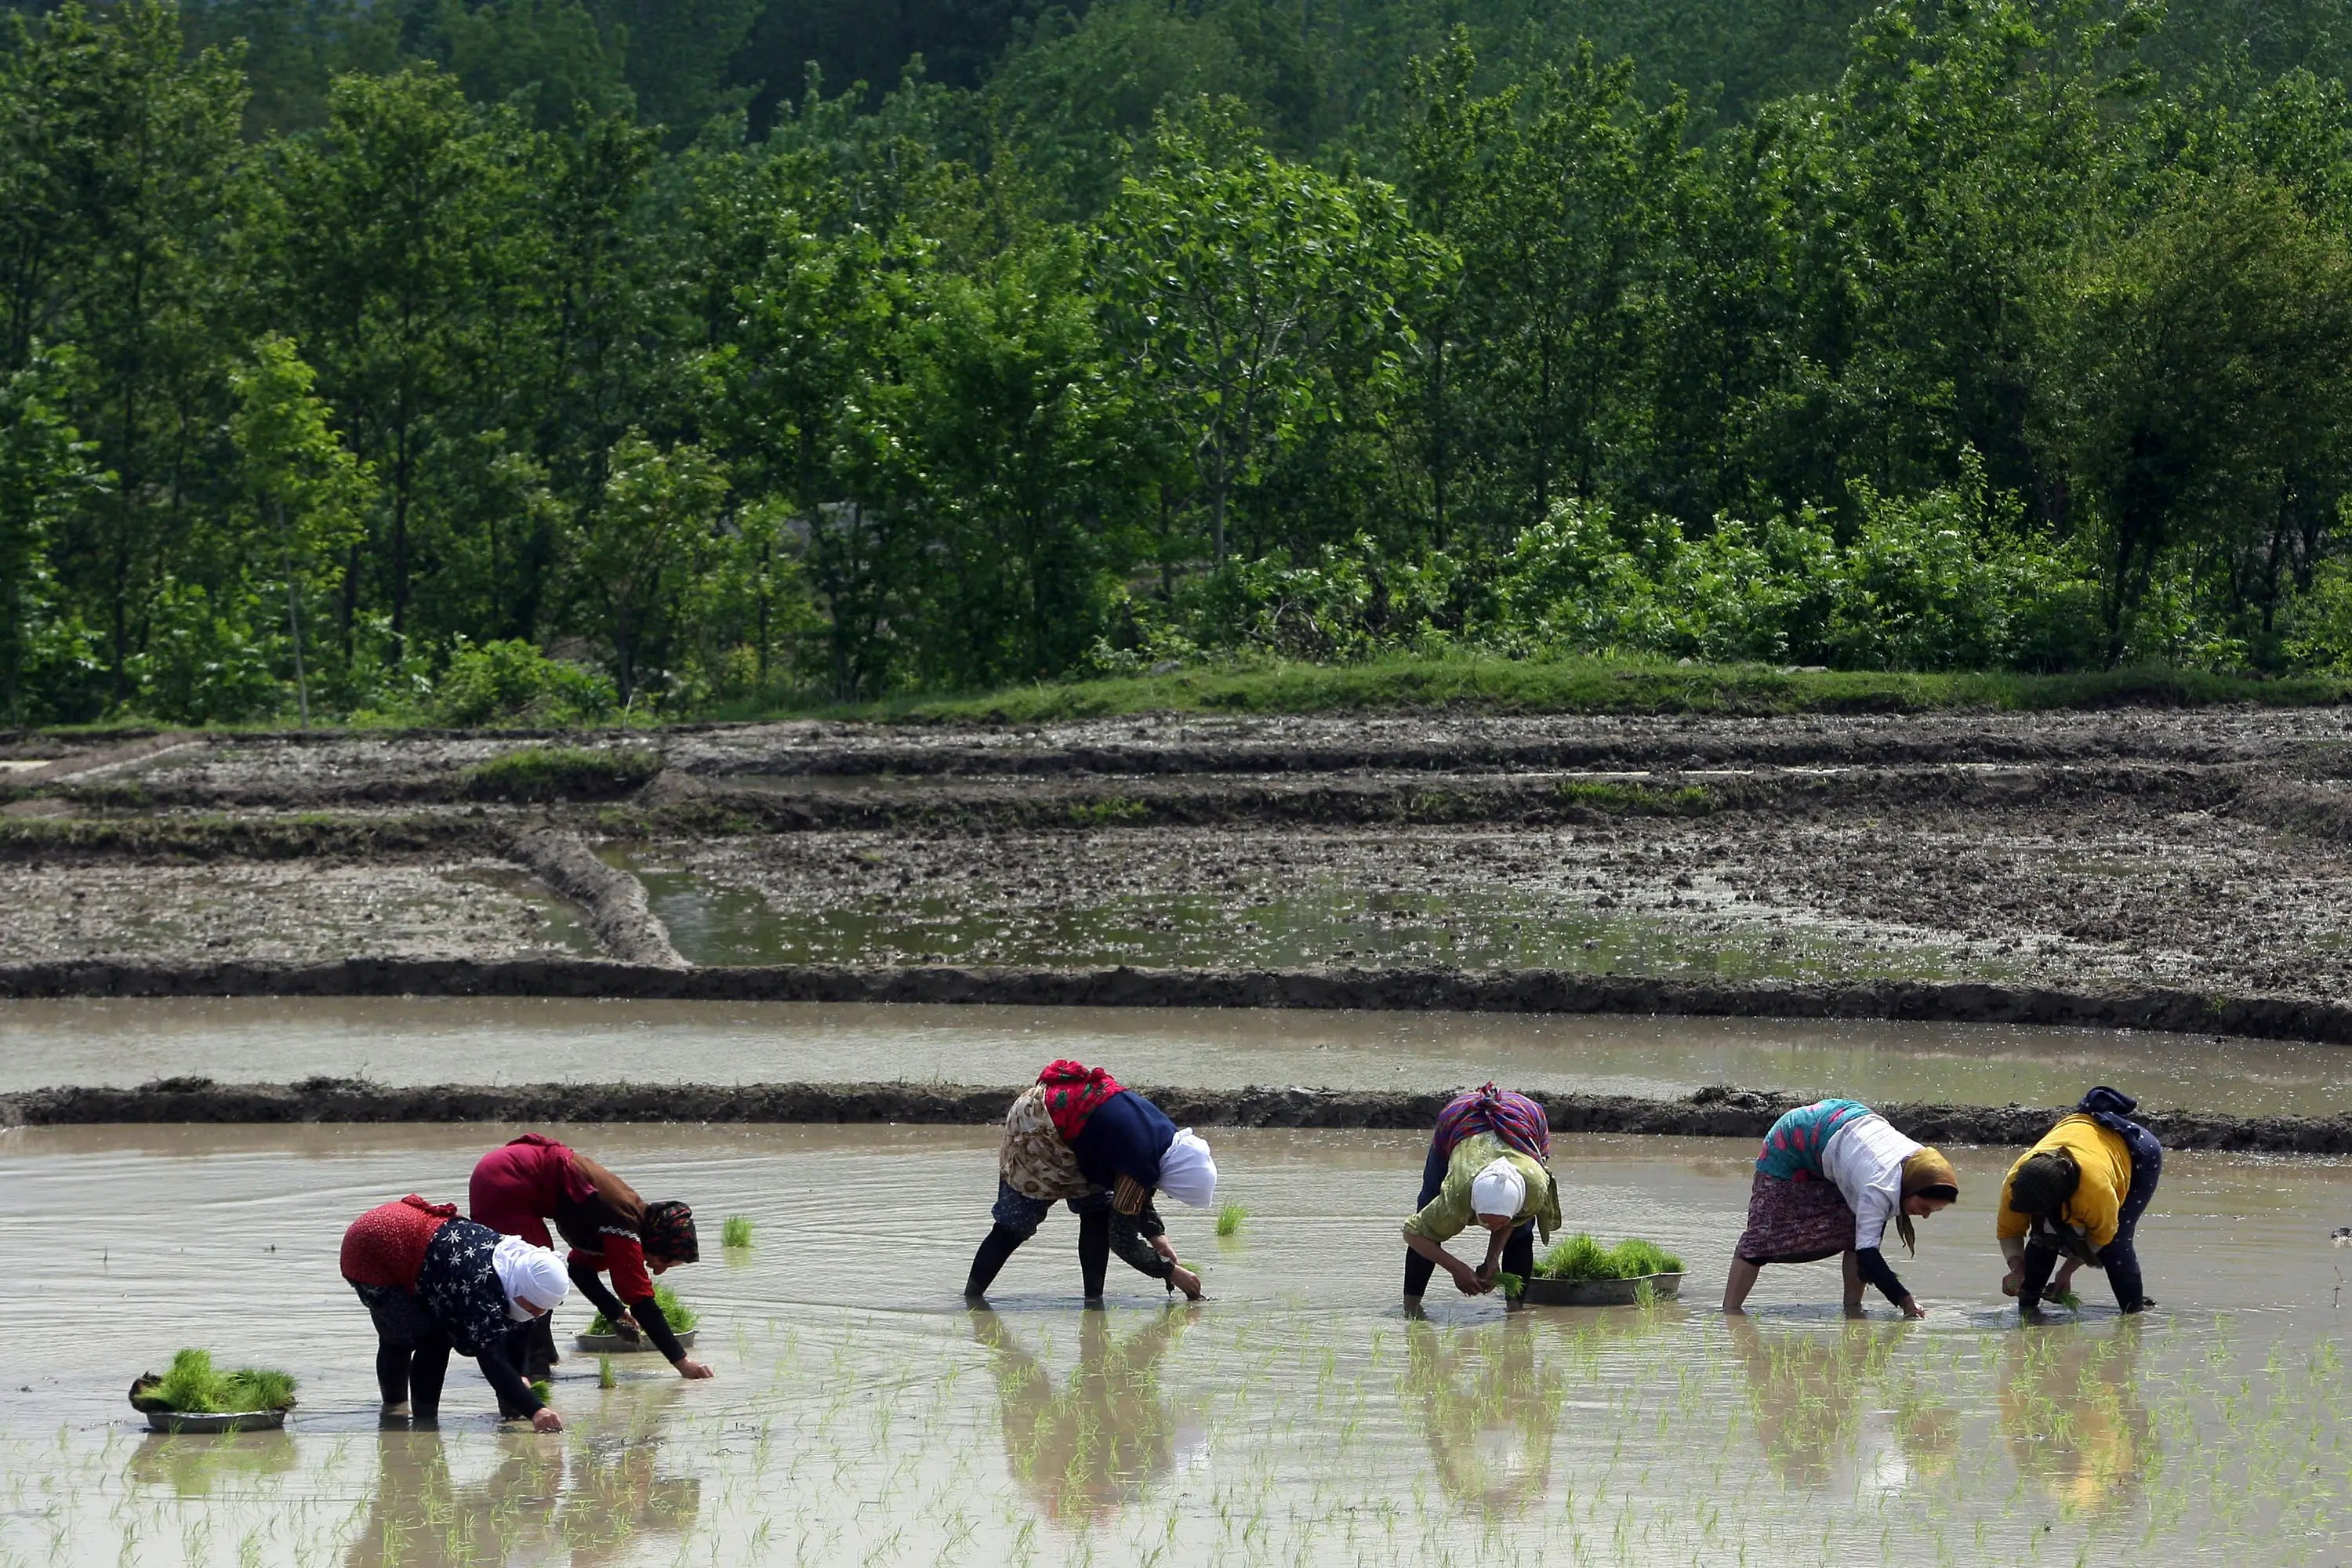 But expectations are that as the Chinese economy develops that its agricultural workforce will account for less than 10 percent of its total workforce.